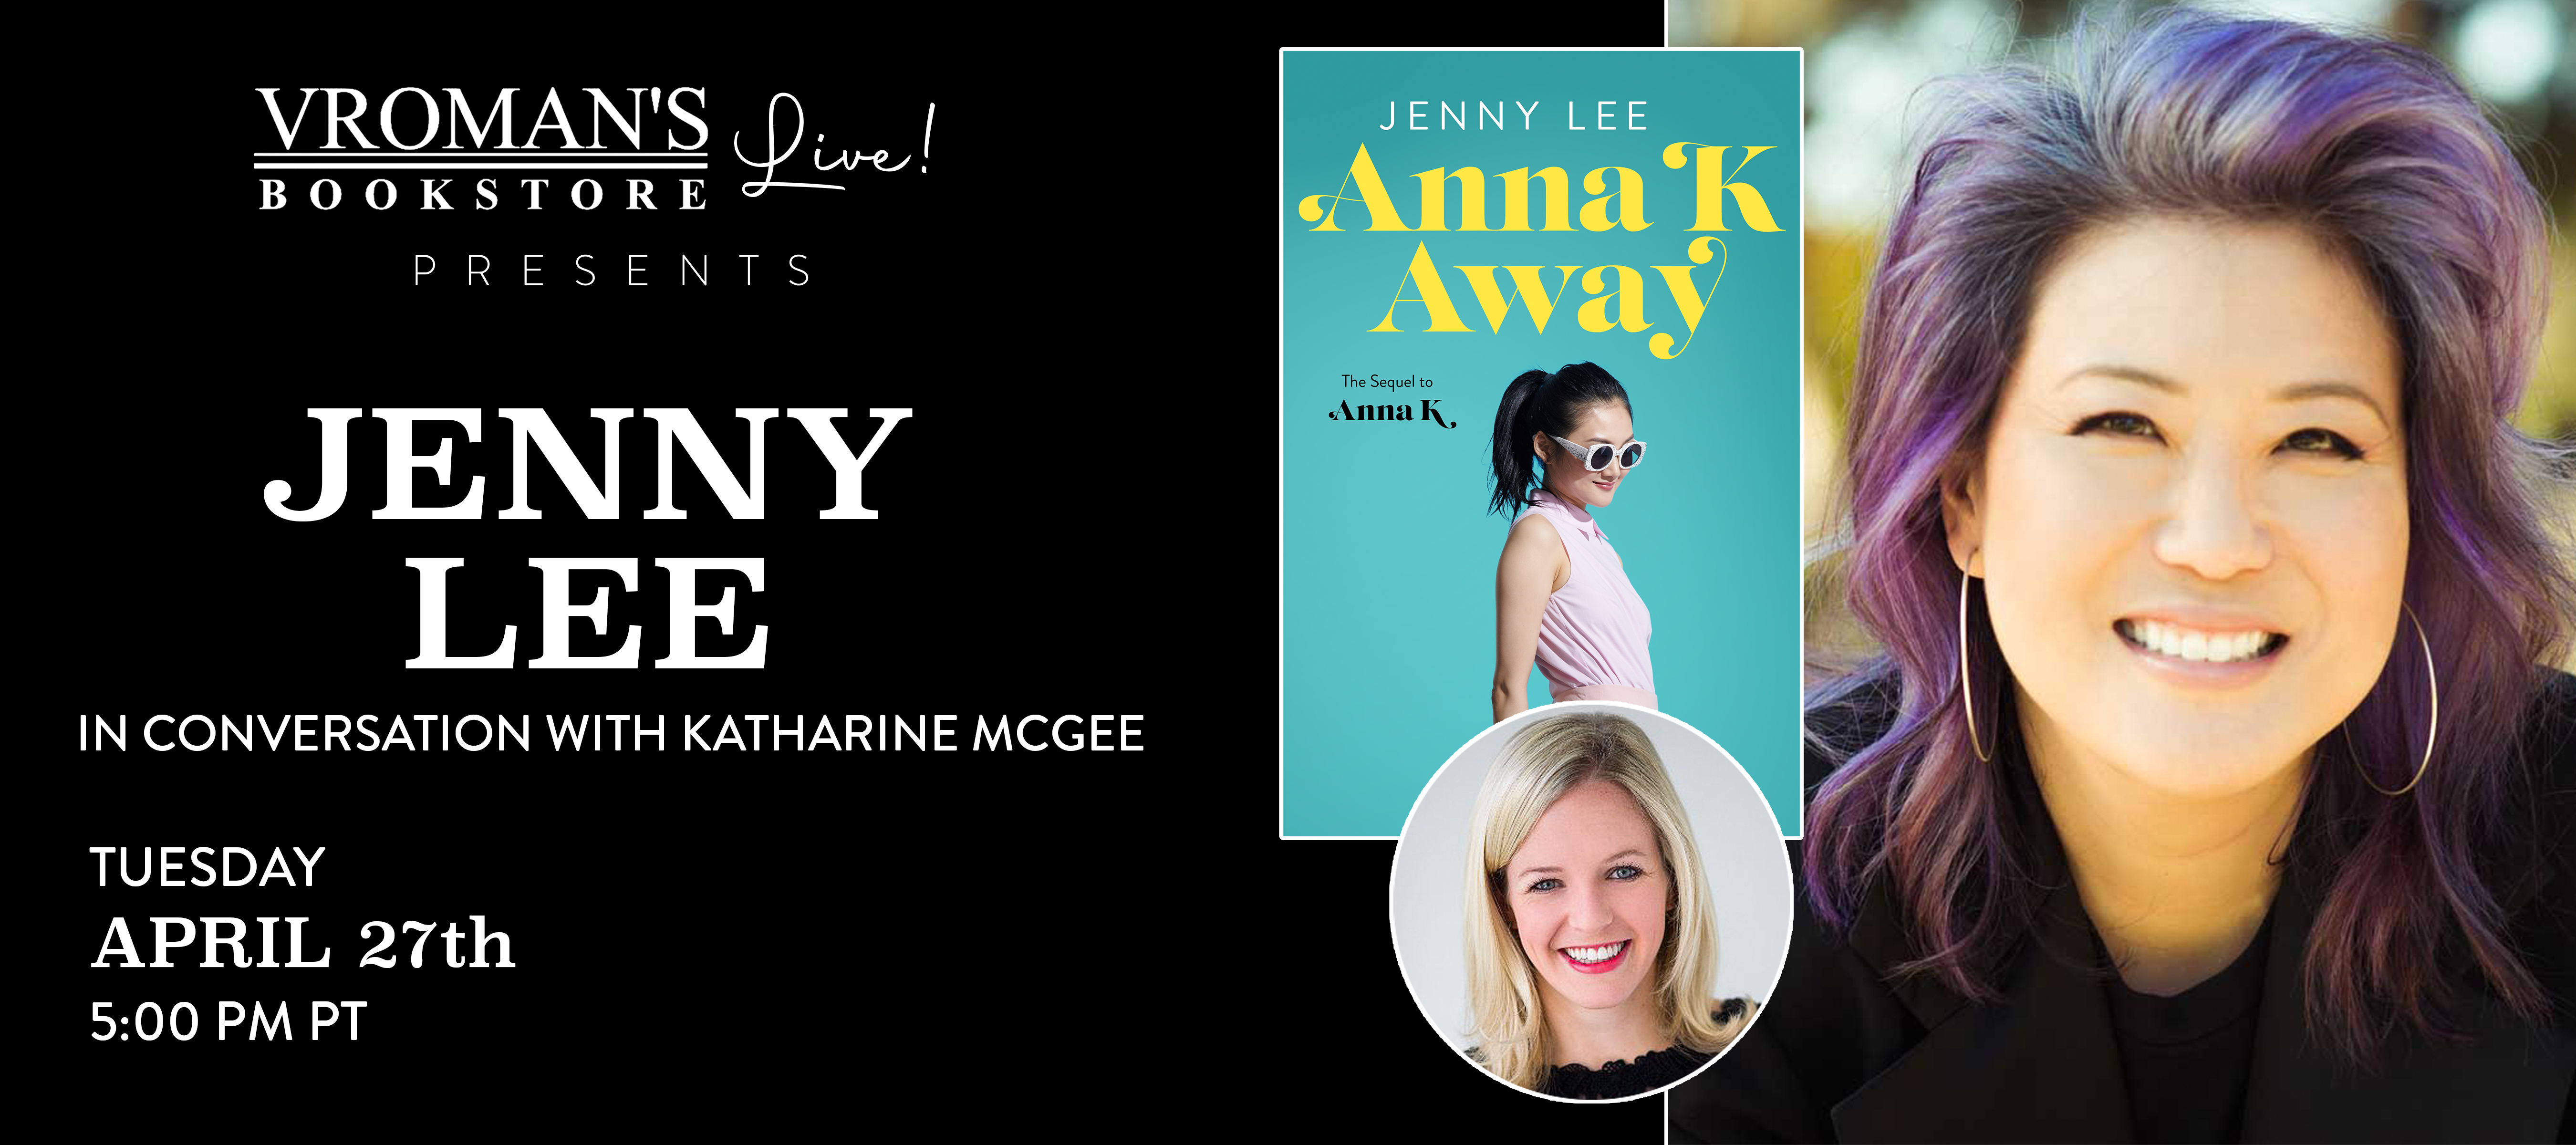 Jenny Lee, in conversation with Katharine McCee, on Tuesday April 27th at 5pm